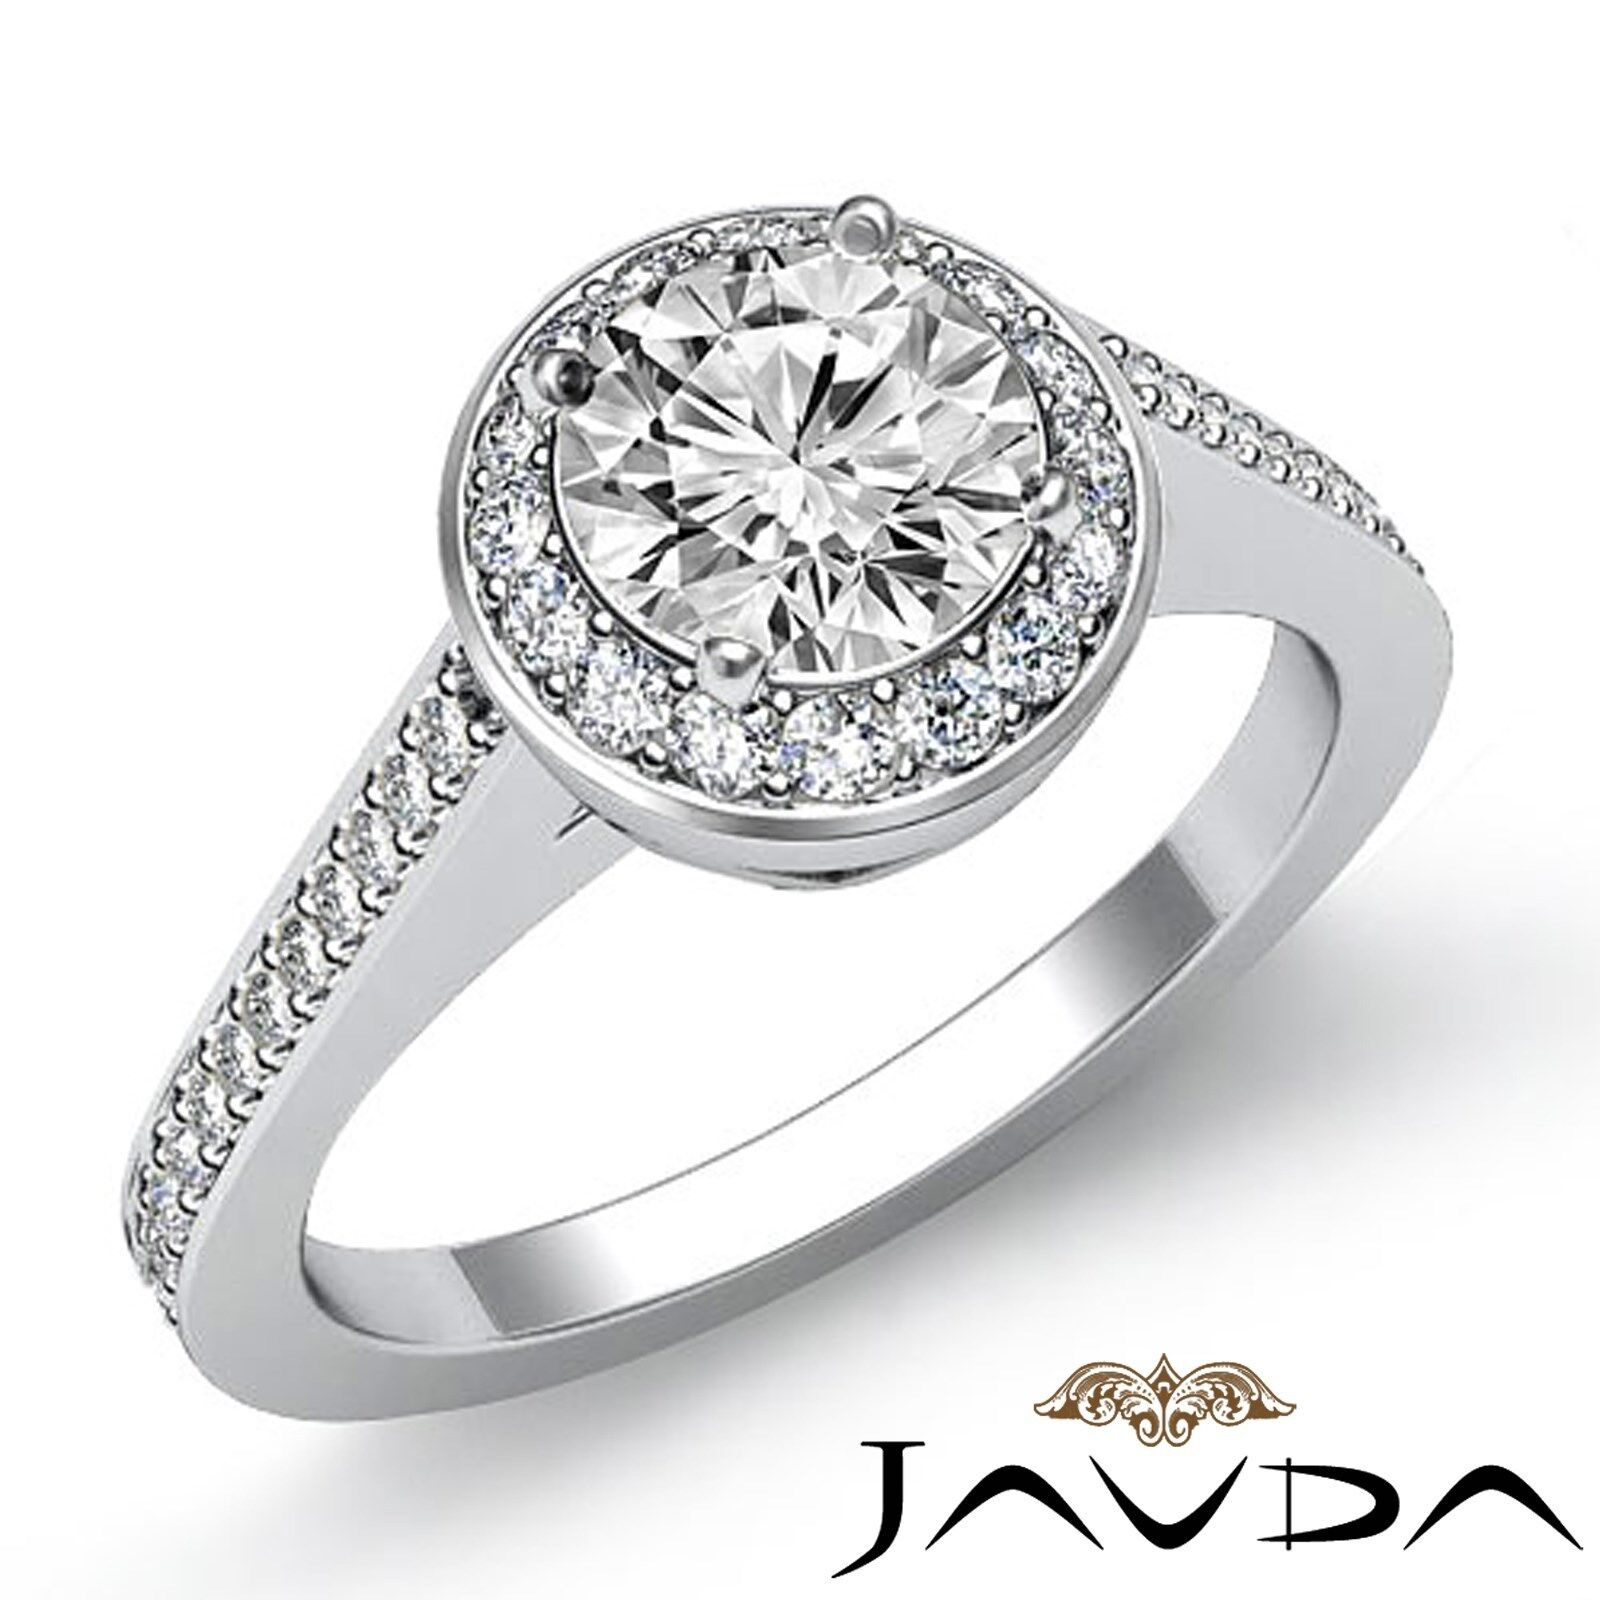 Halo Pave Setting Round Brilliant Diamond Engagement Ring GIA I Color VS2 2 Ct